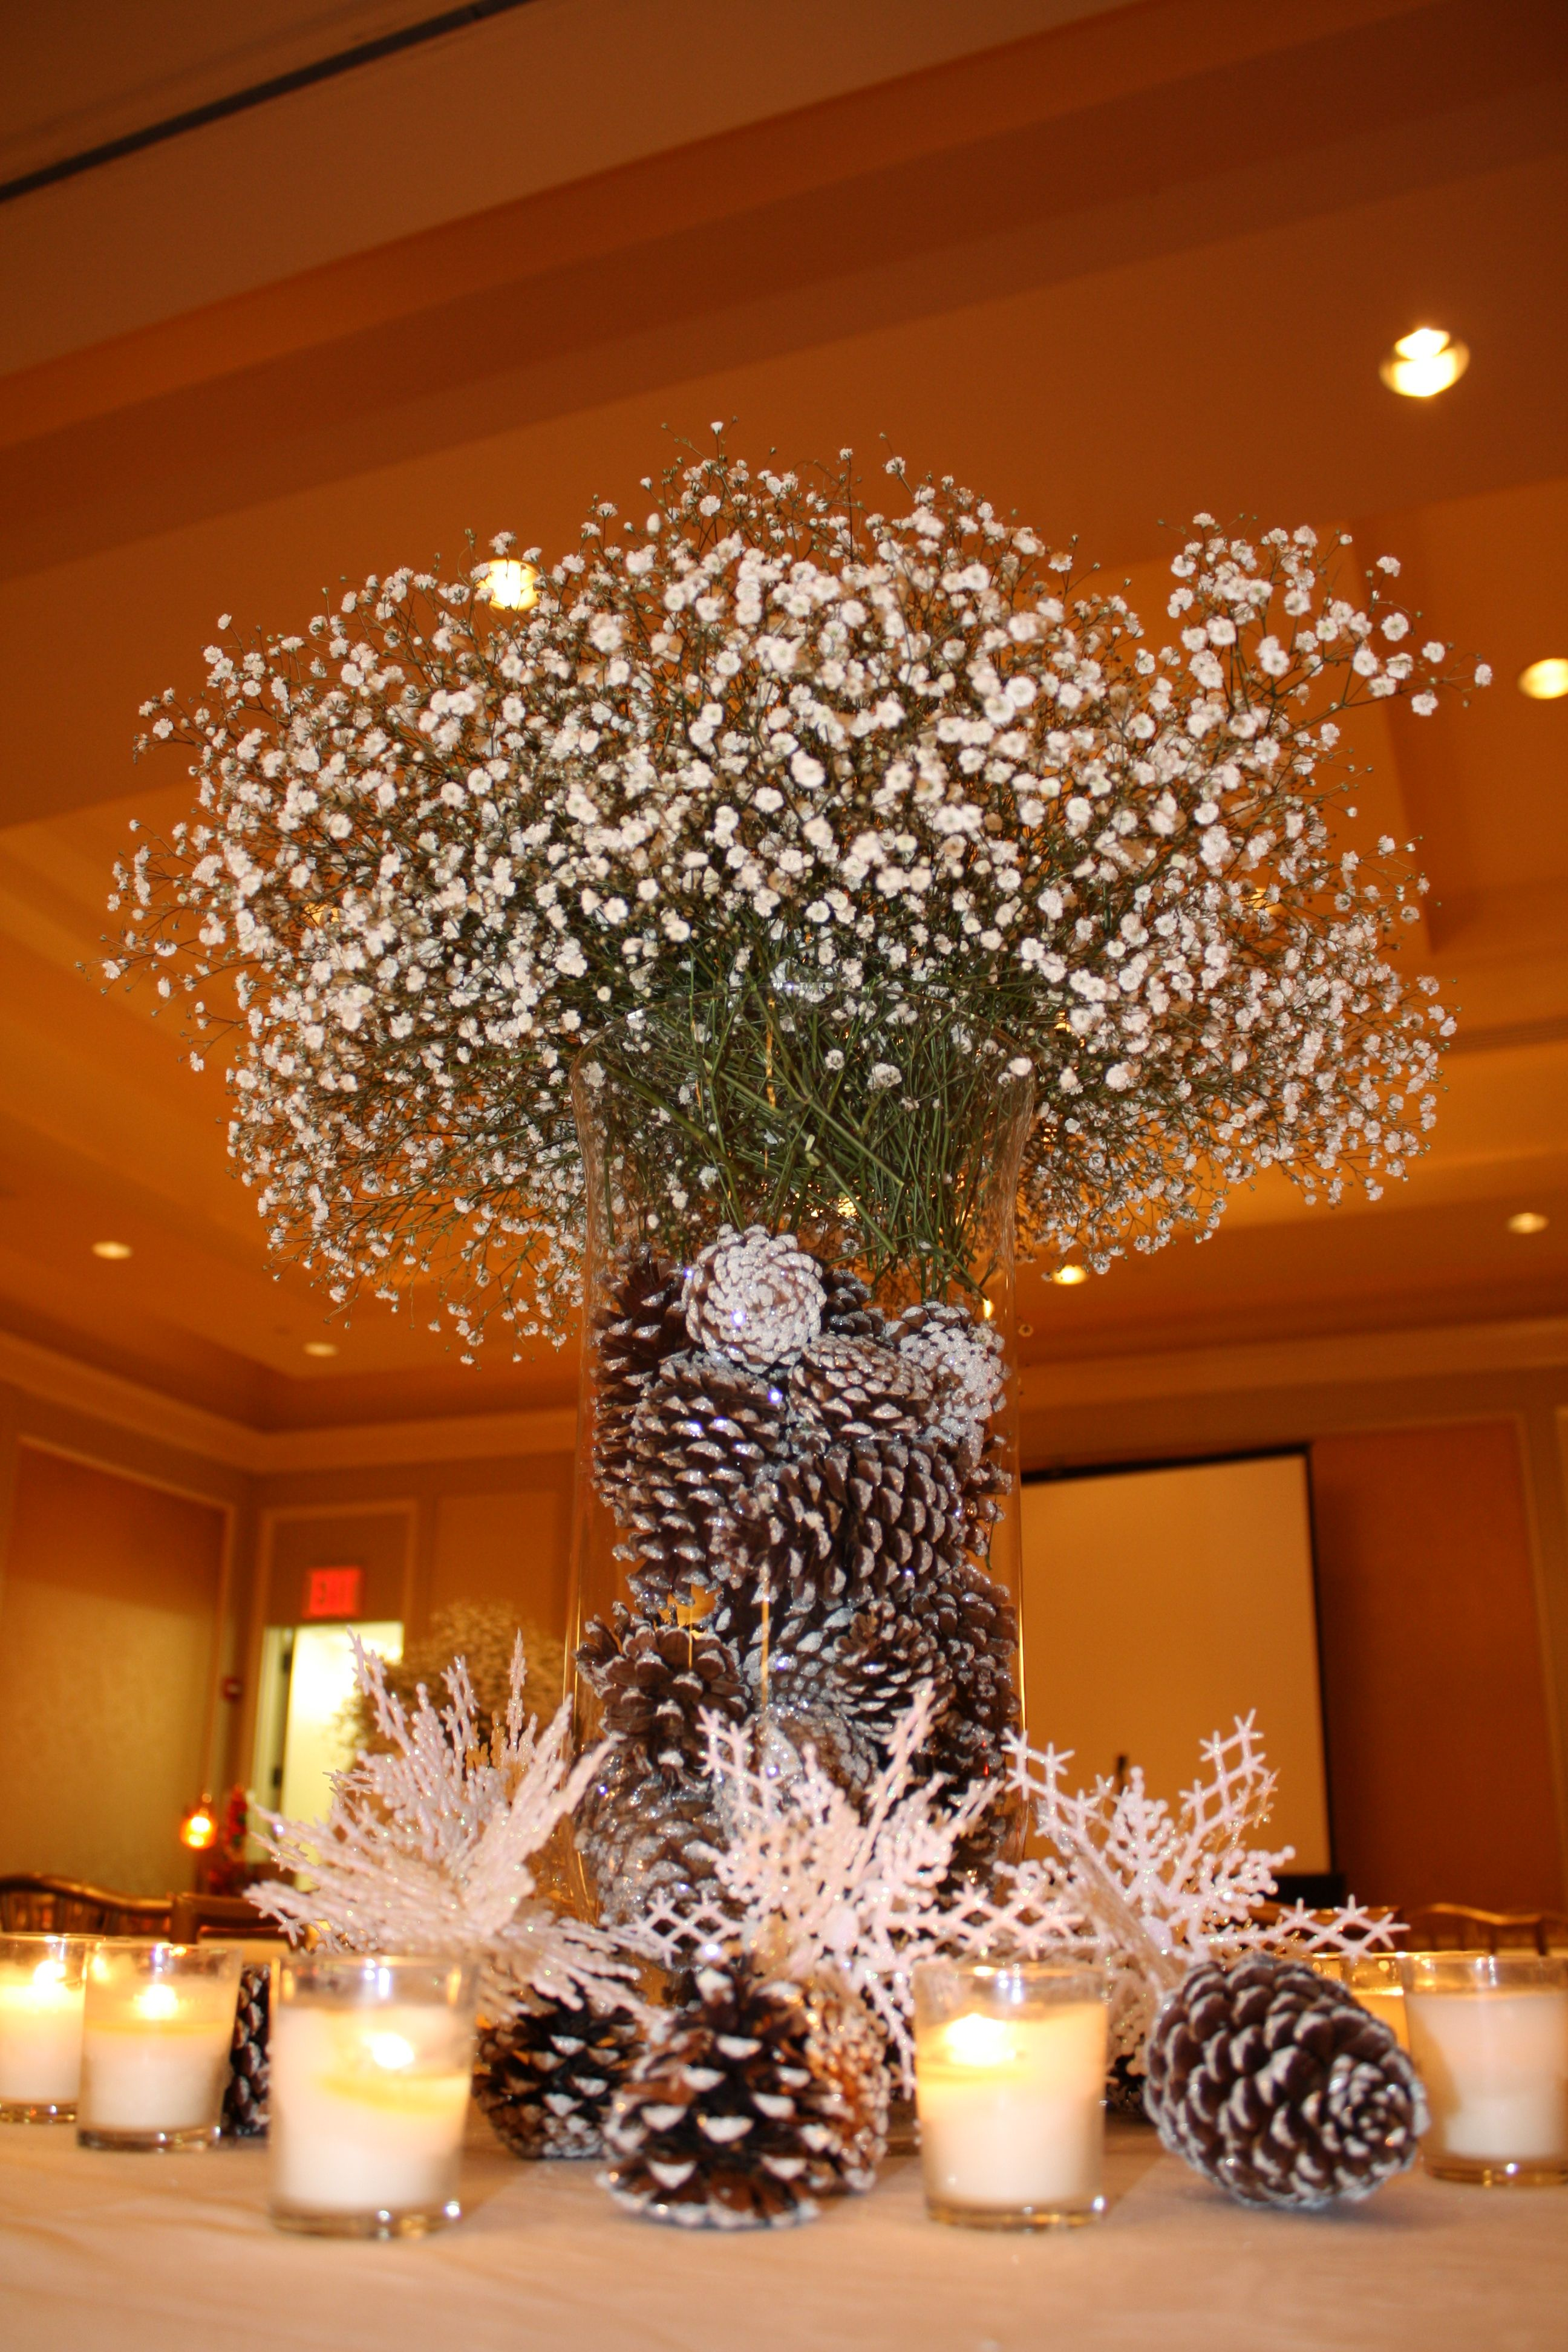 Corporate Holiday Party   Centerpiece   SocialTables com   Event     Corporate Holiday Party   Centerpiece   SocialTables com   Event Planning  Software